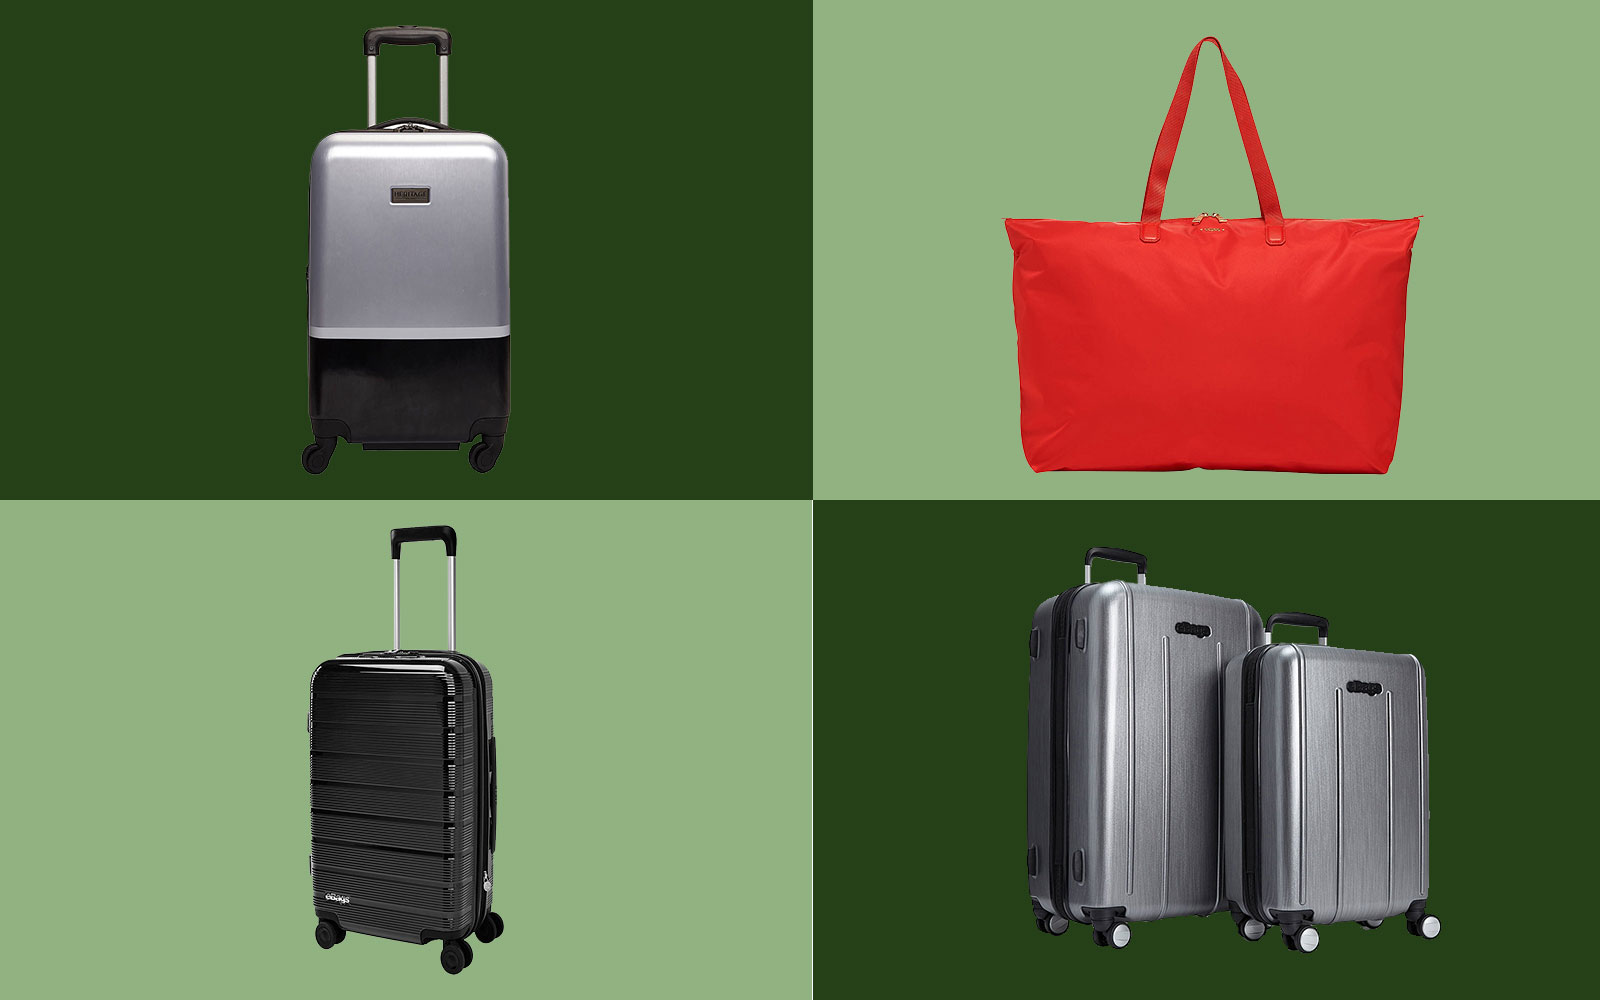 eBags' Massive Sale Includes Tumi and Samsonite Luggage